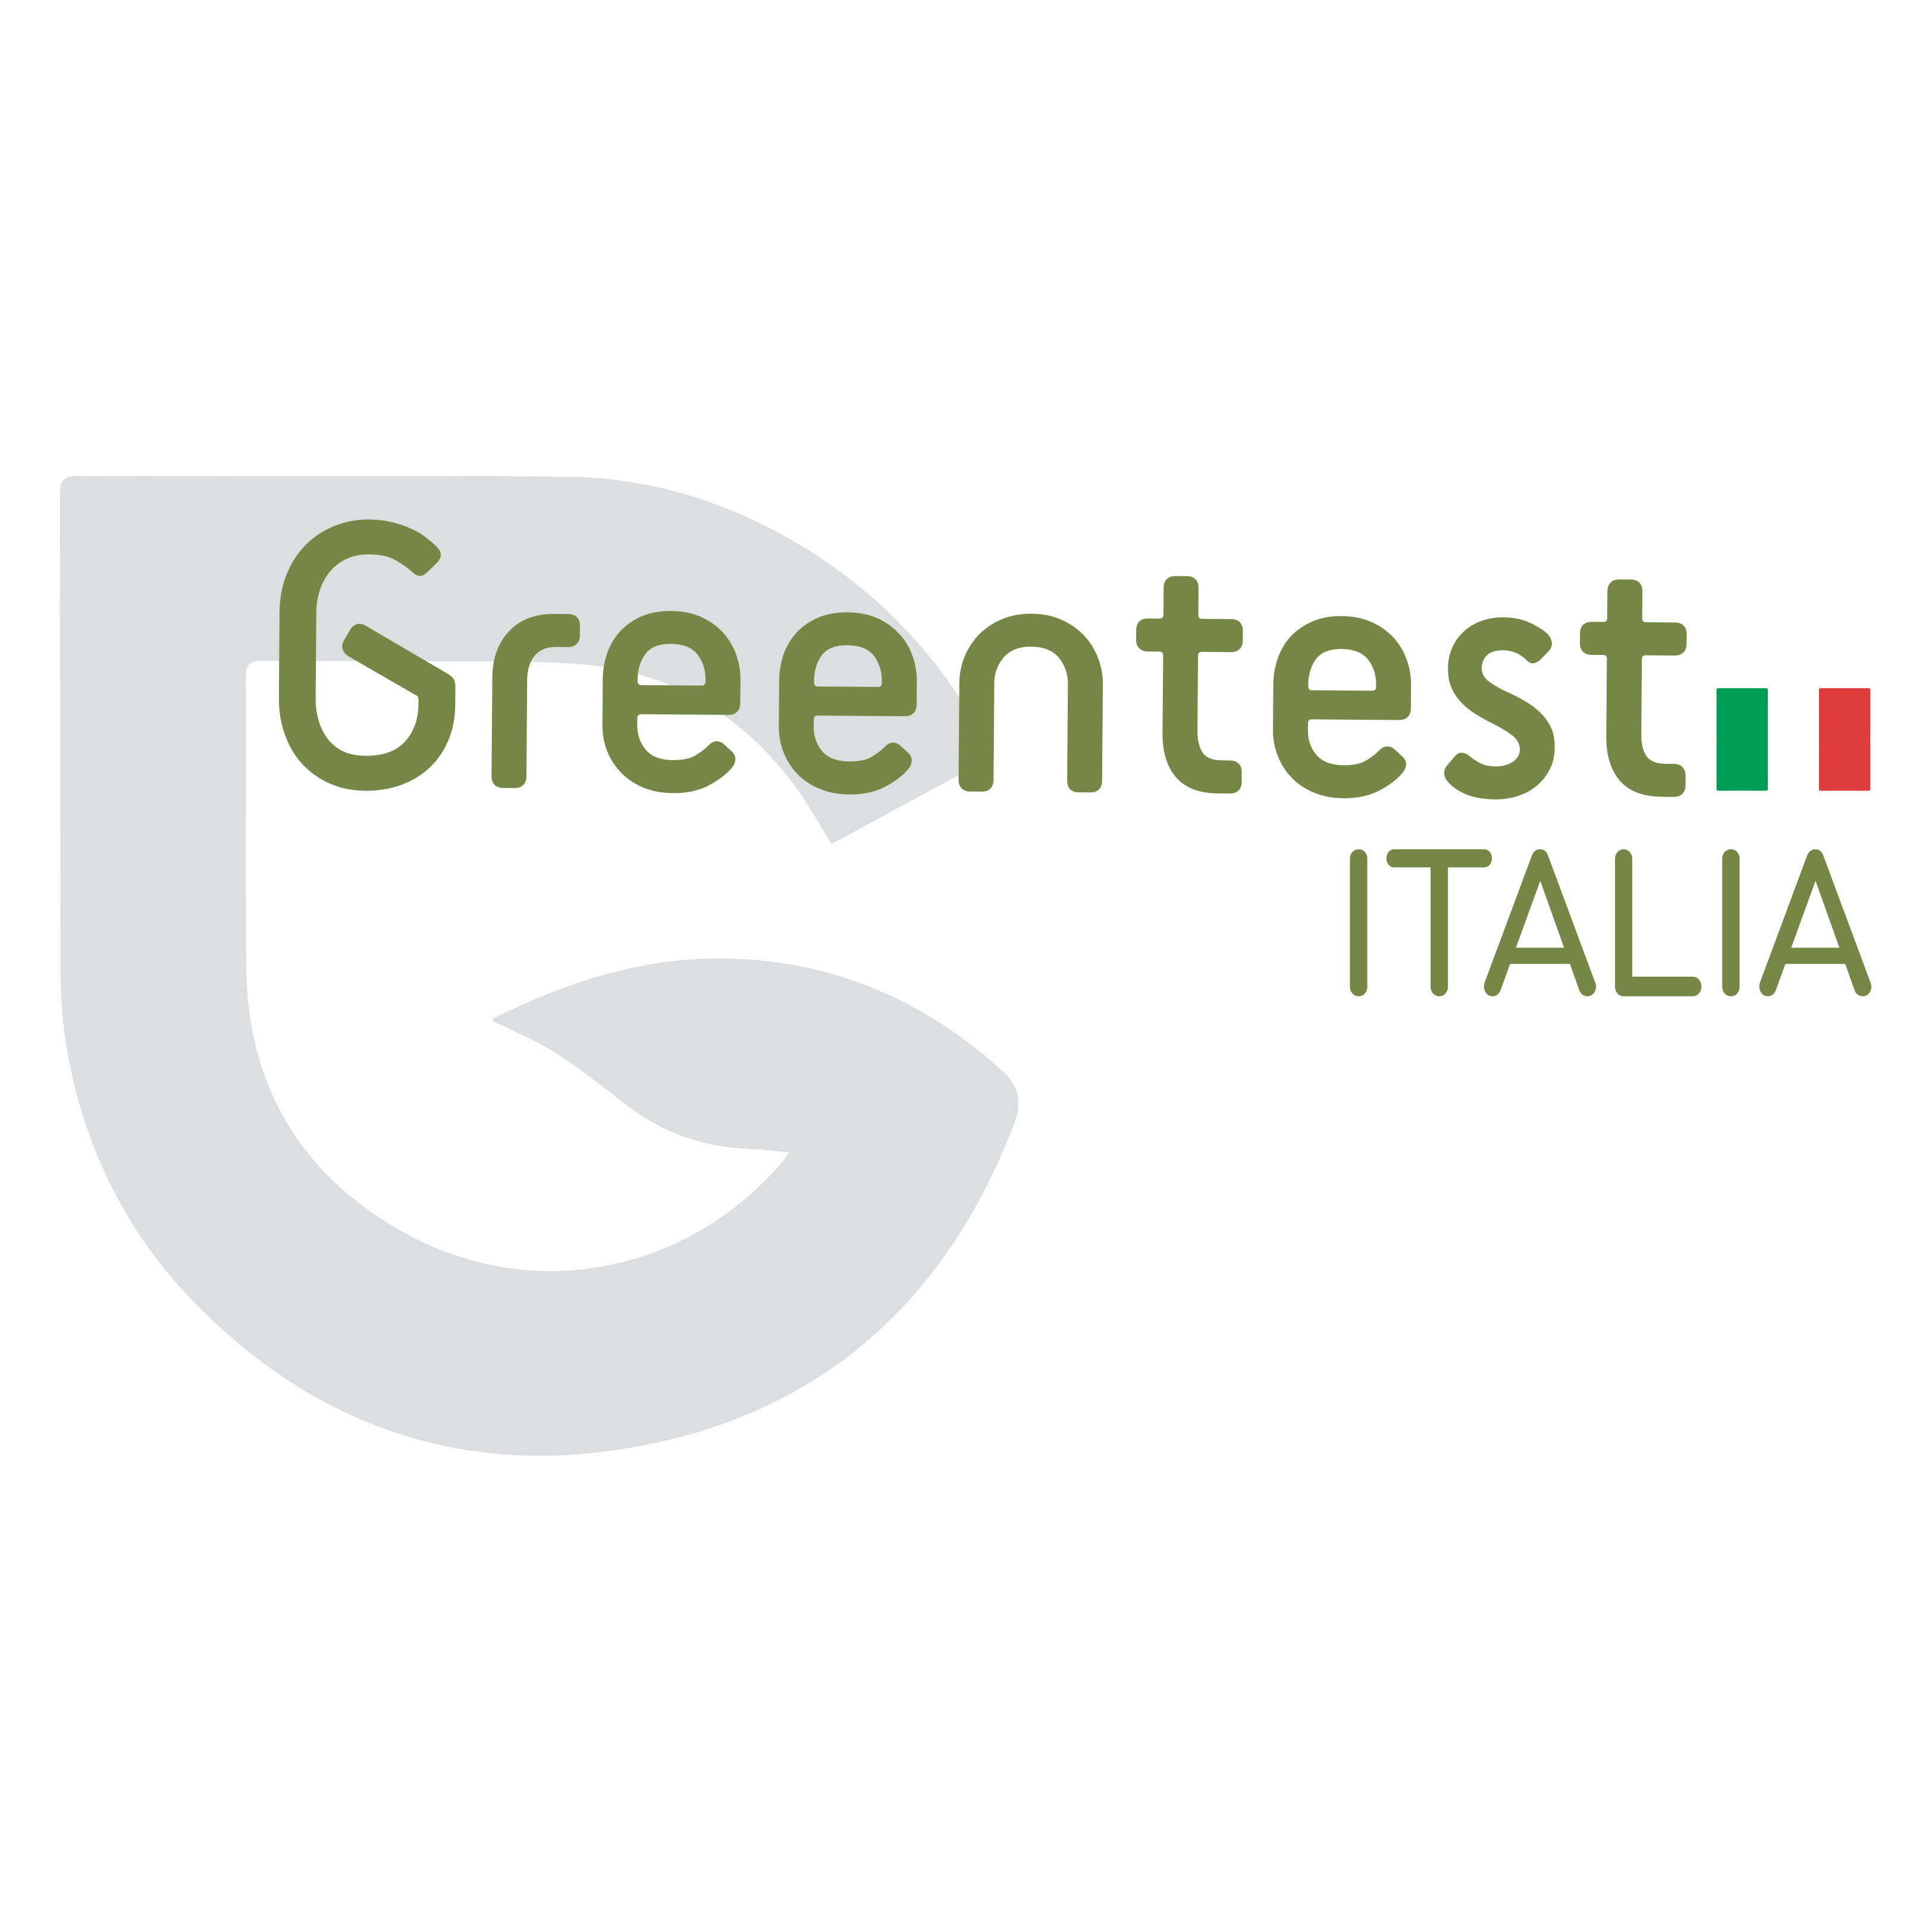 GREENTEST